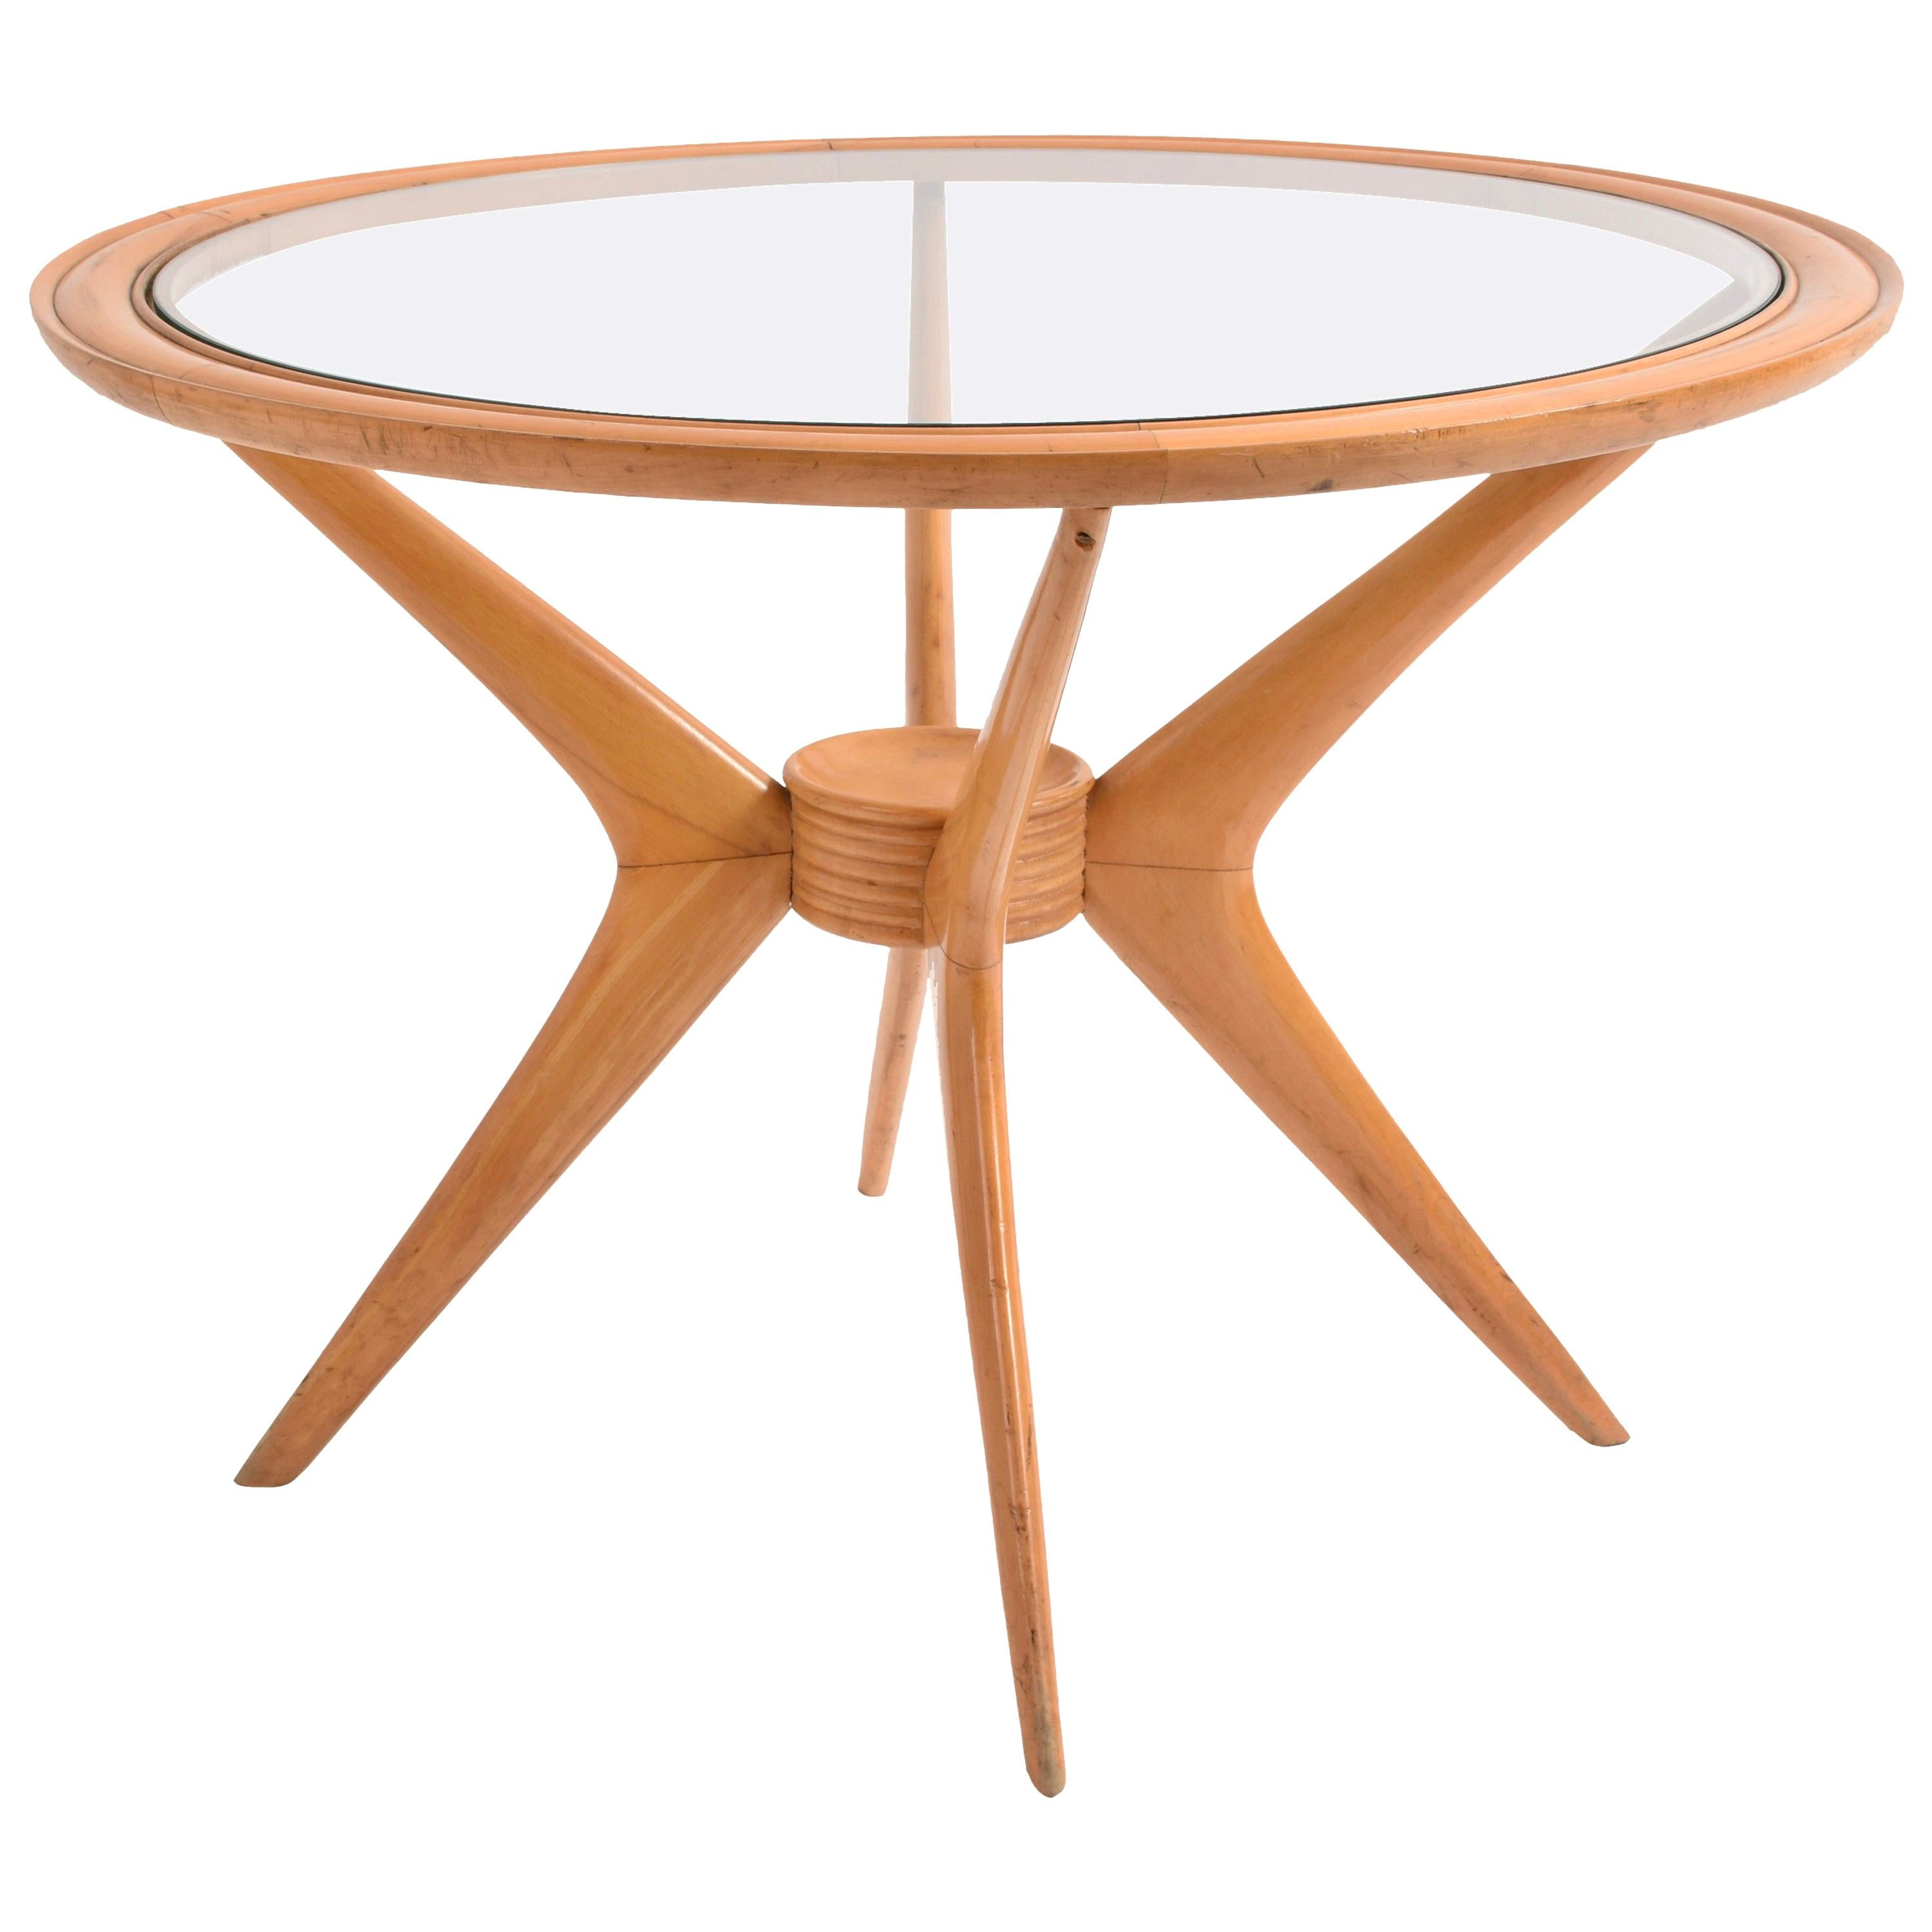 Midcentury Coffee Table in Birchwood by Cesare Lacca for Cassina, Italian, 1950s